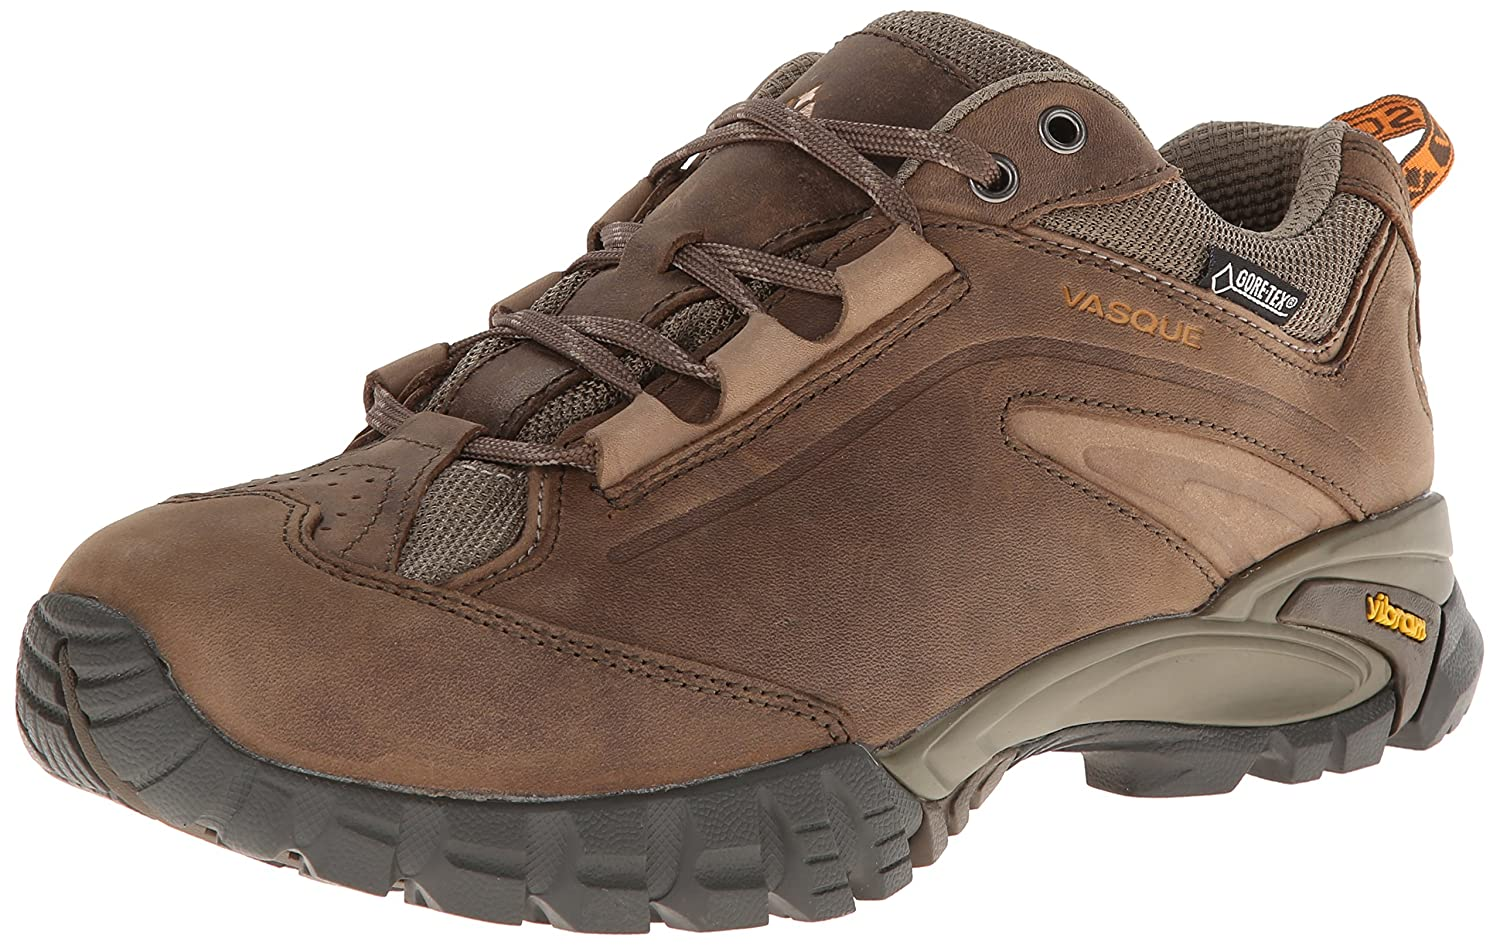 Vasque Women's Mantra 2.0 Gore-Tex Hiking Shoe B005EQAFUK 7.5 B(M) US|Canteen/Orange Peel